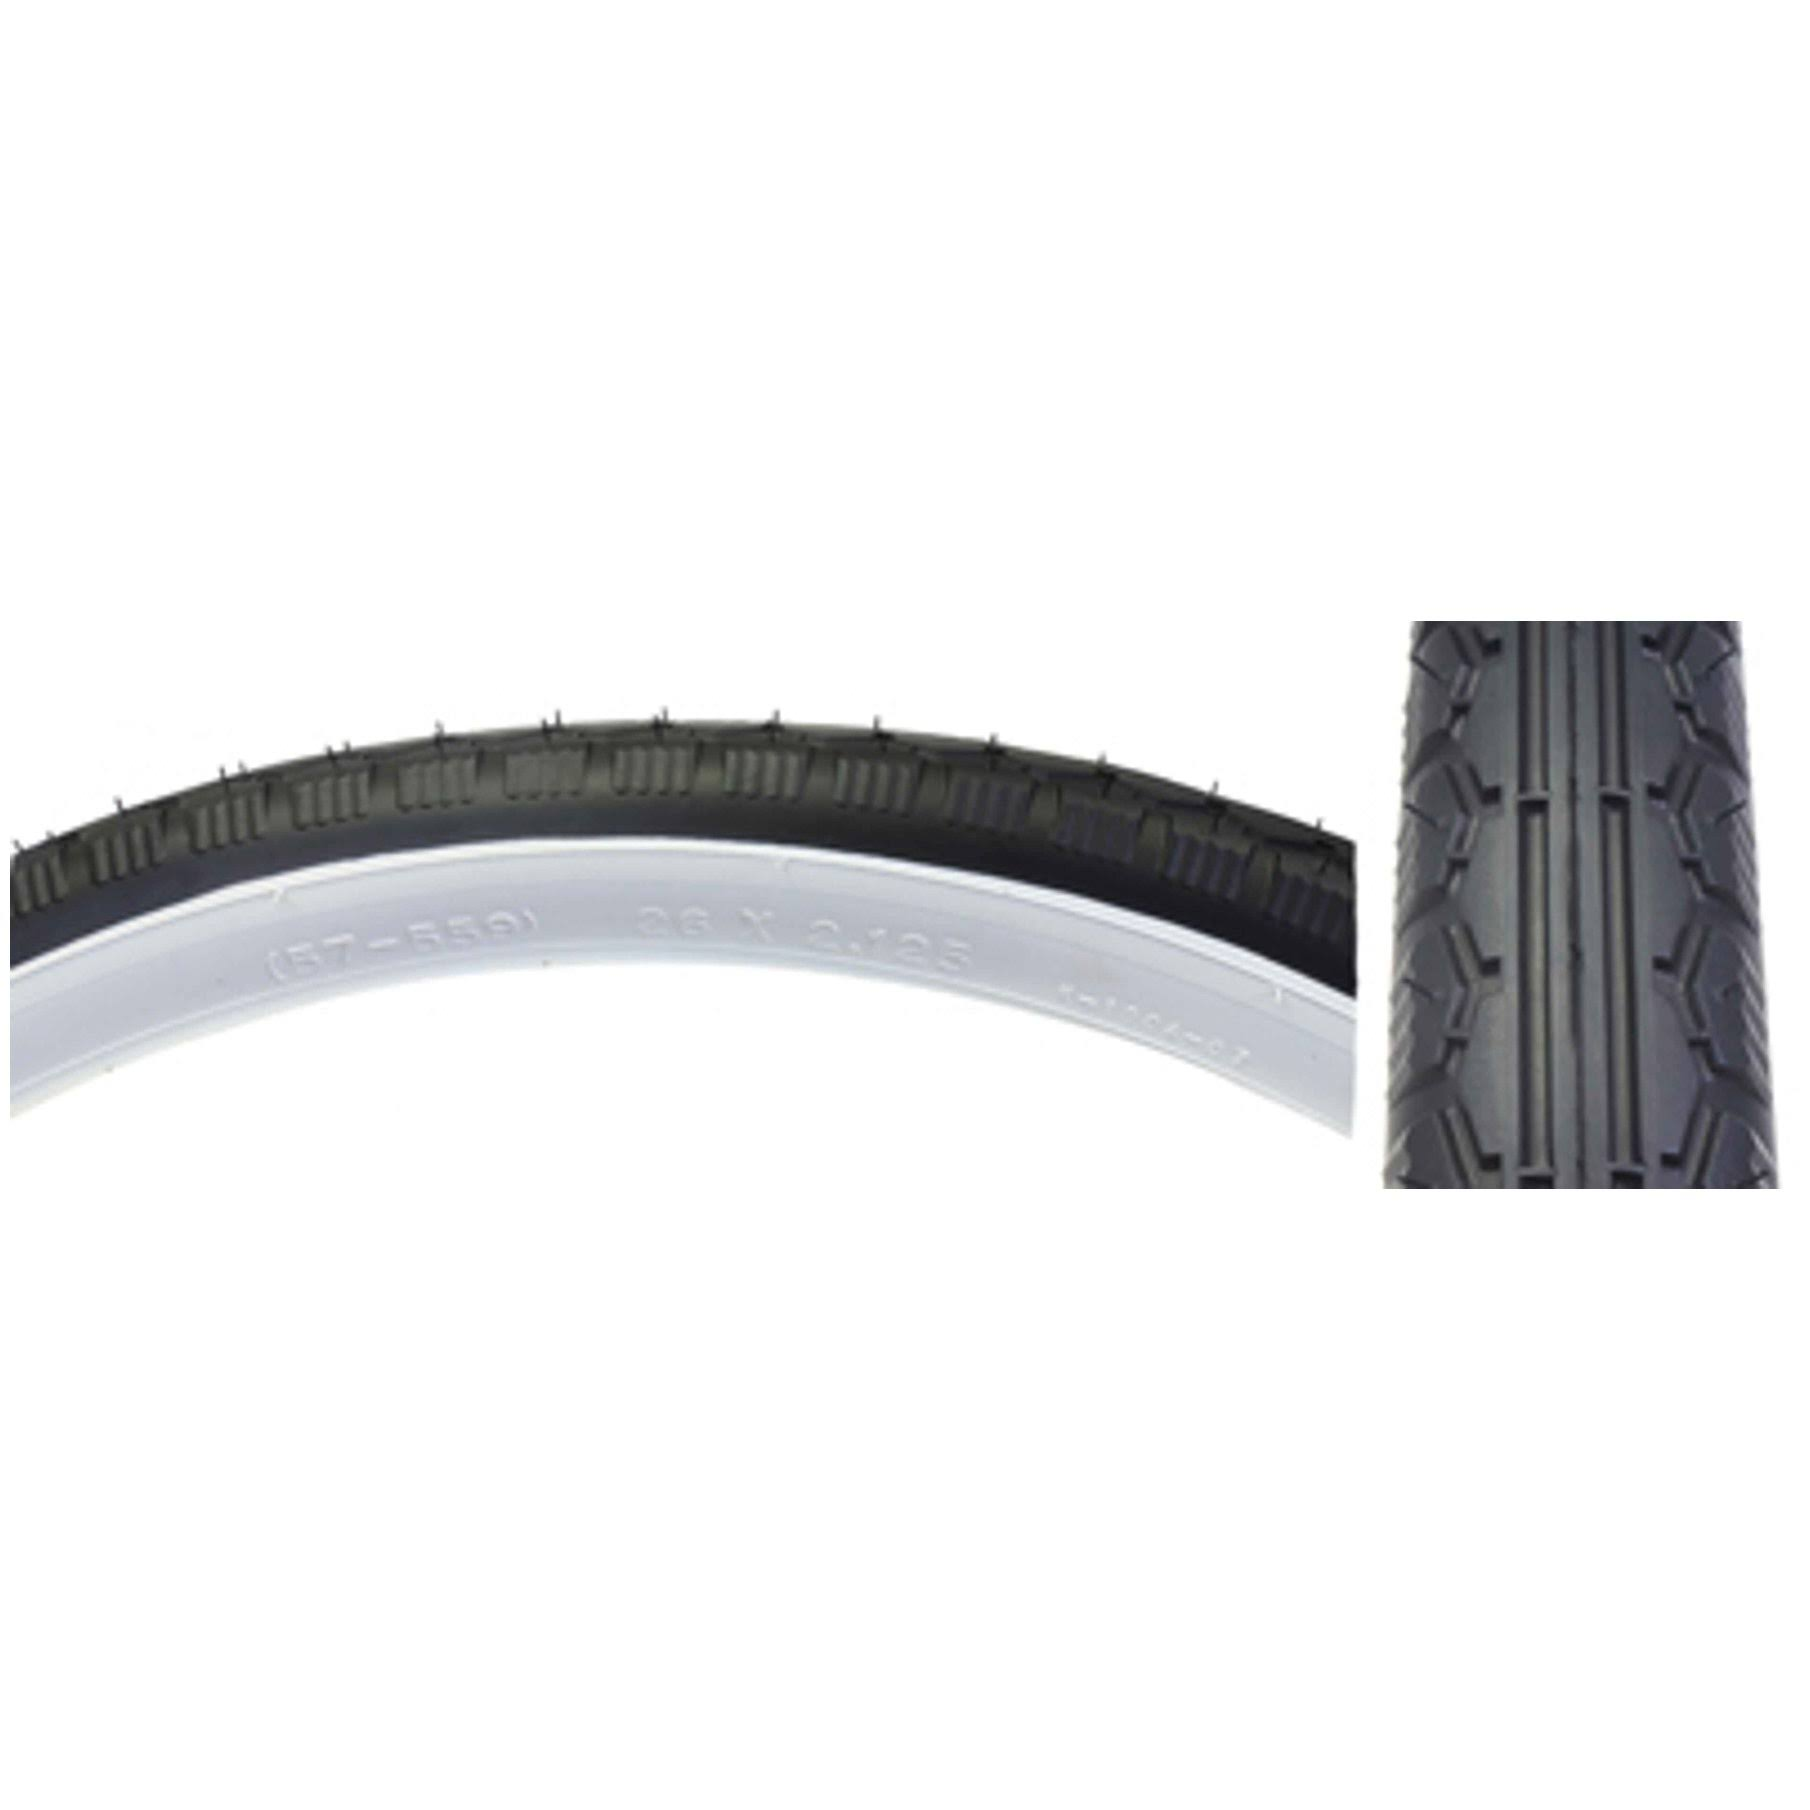 "Sunlite Street Tires - Black and White, 26"" x 2.125"""